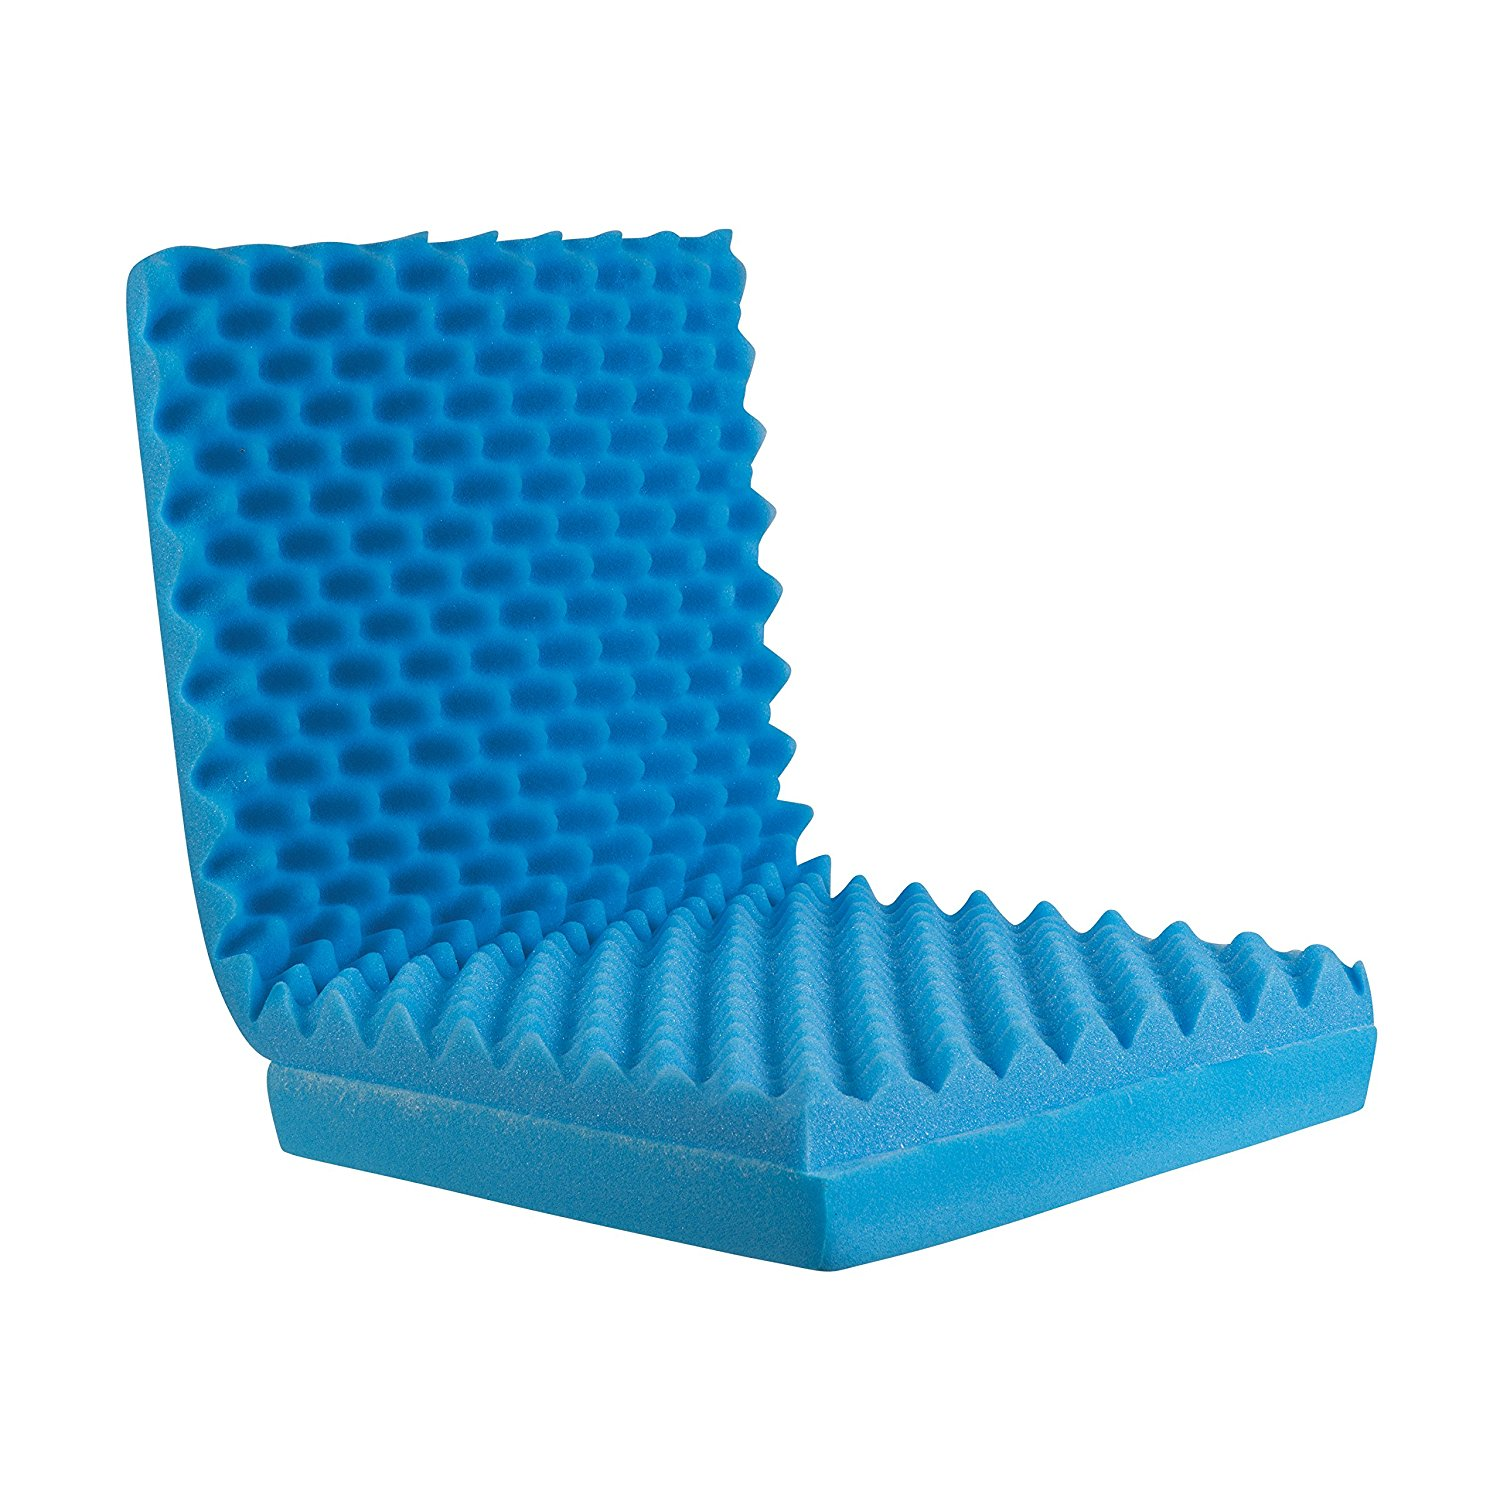 Bed Sore Cushions Convoluted Foam Chair Pad Seat Cushion With Attached Back Cushion Blue Sculpted Foam Seat Cushion With Attached Back Cushion Provides Comfort By